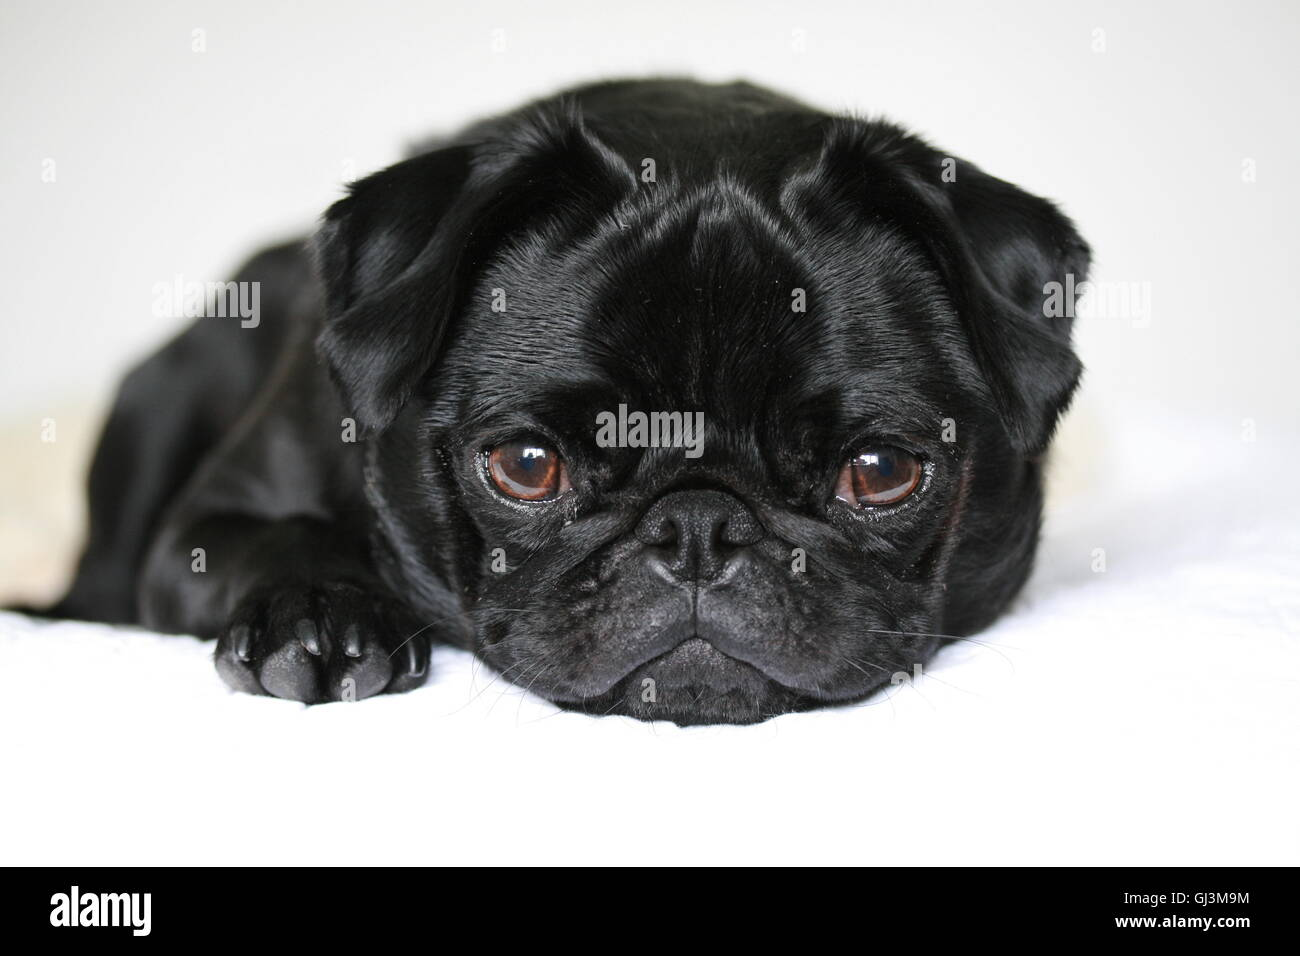 cute black pug dog, 2 year old male pug - Stock Image